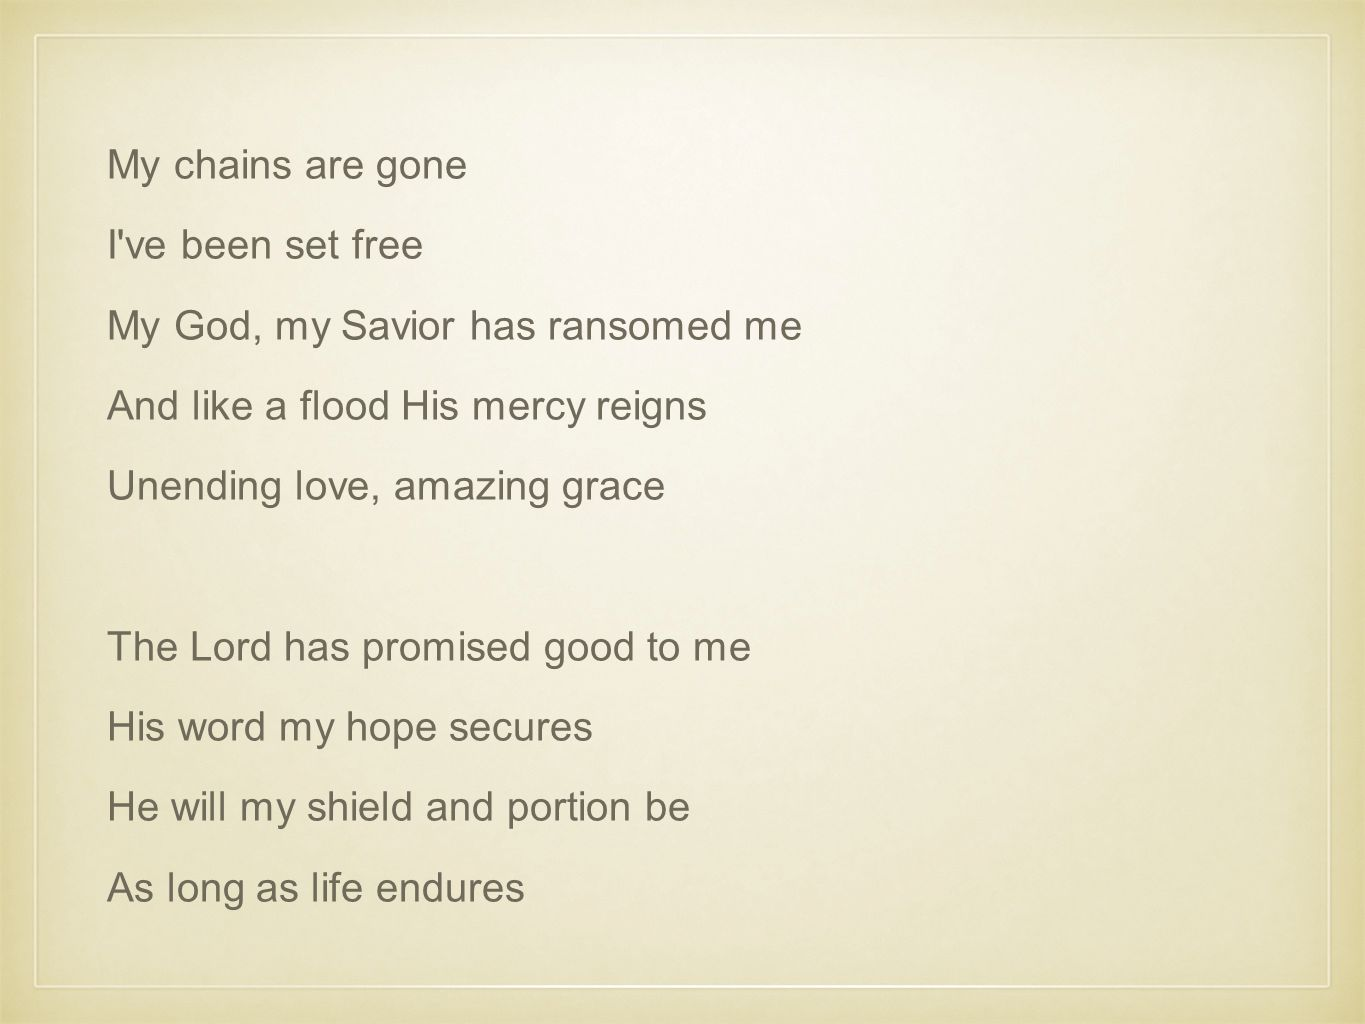 My chains are gone I ve been set free My God, my Savior has ransomed me And like a flood His mercy reigns Unending love, amazing grace The Lord has promised good to me His word my hope secures He will my shield and portion be As long as life endures